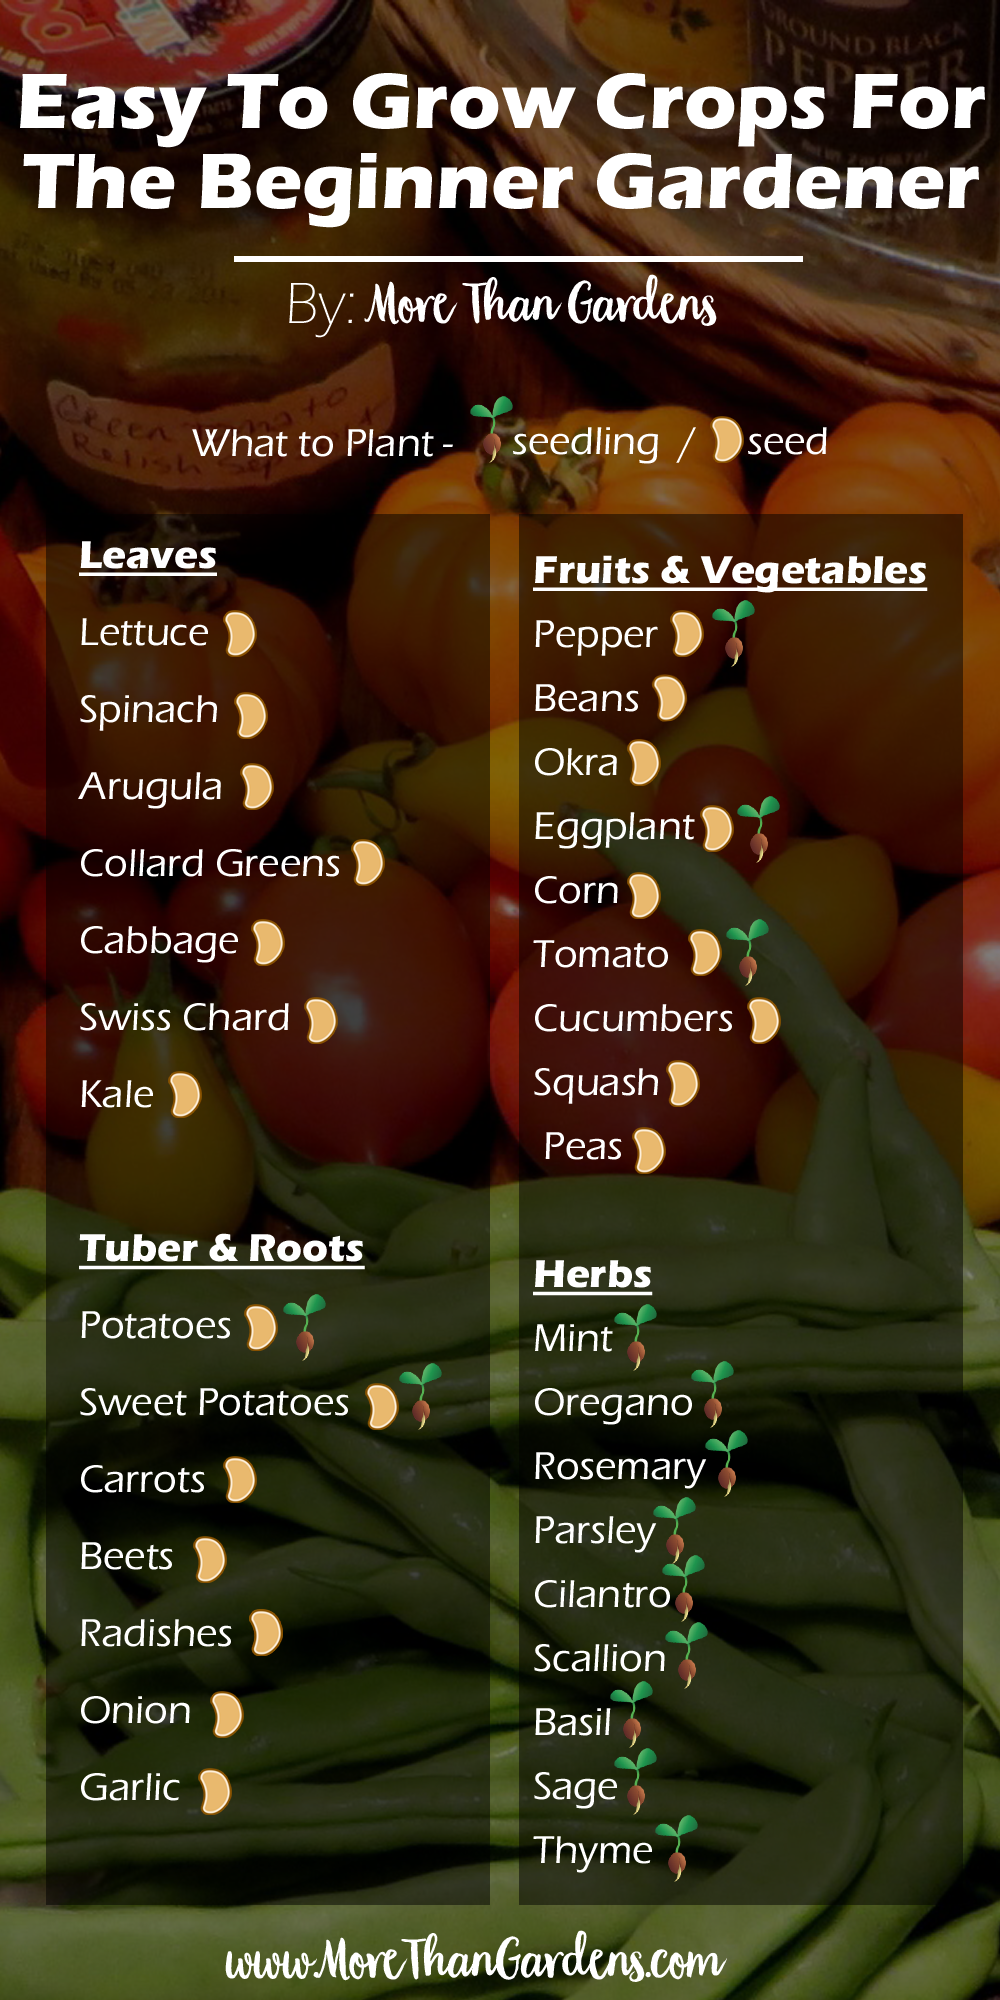 List of crops that are easy to grow for the beginner gardener